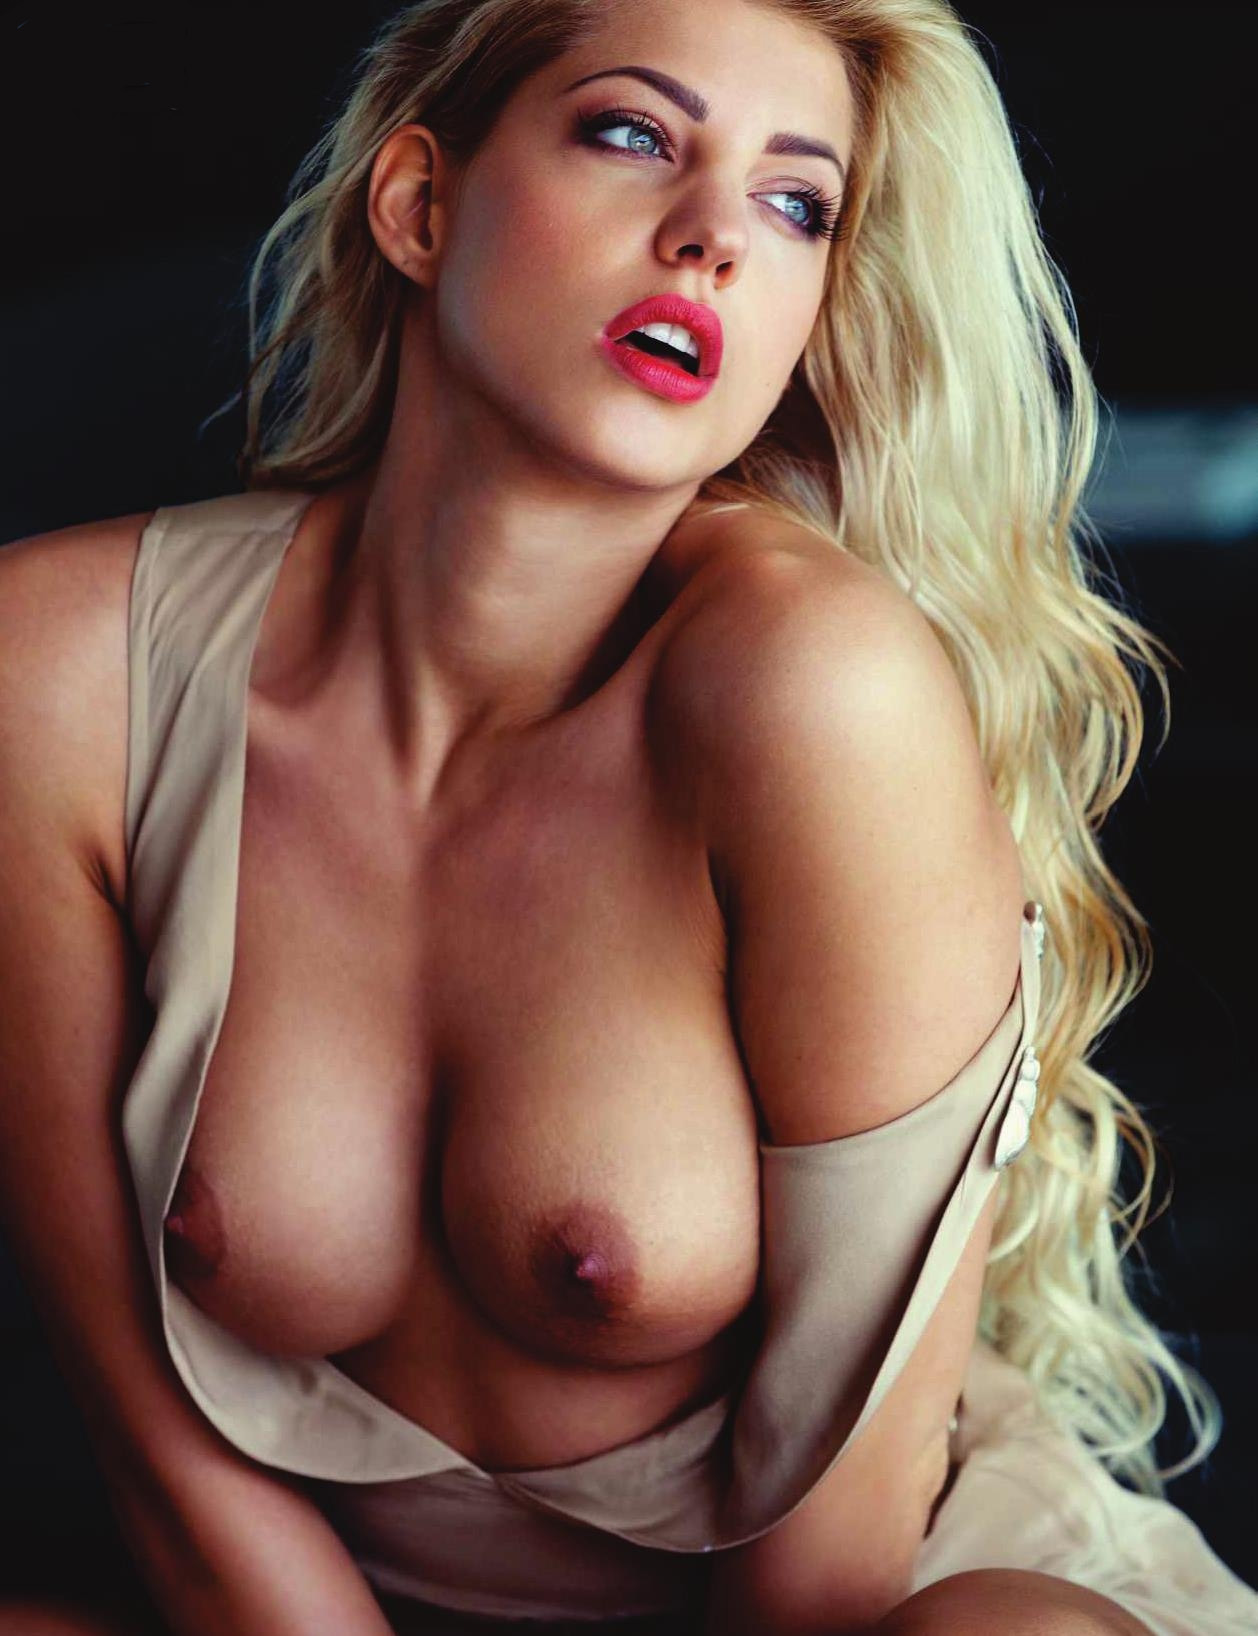 Stunning Blonde Bulgarian Playmate Goddess Strips Naked